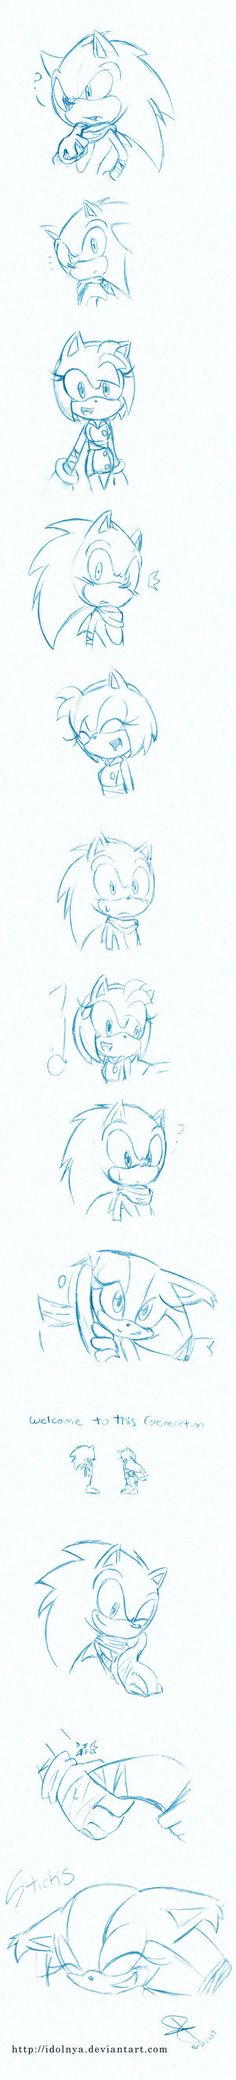 Welcome To Sonic Boom by idolnya WELCOME STICKS